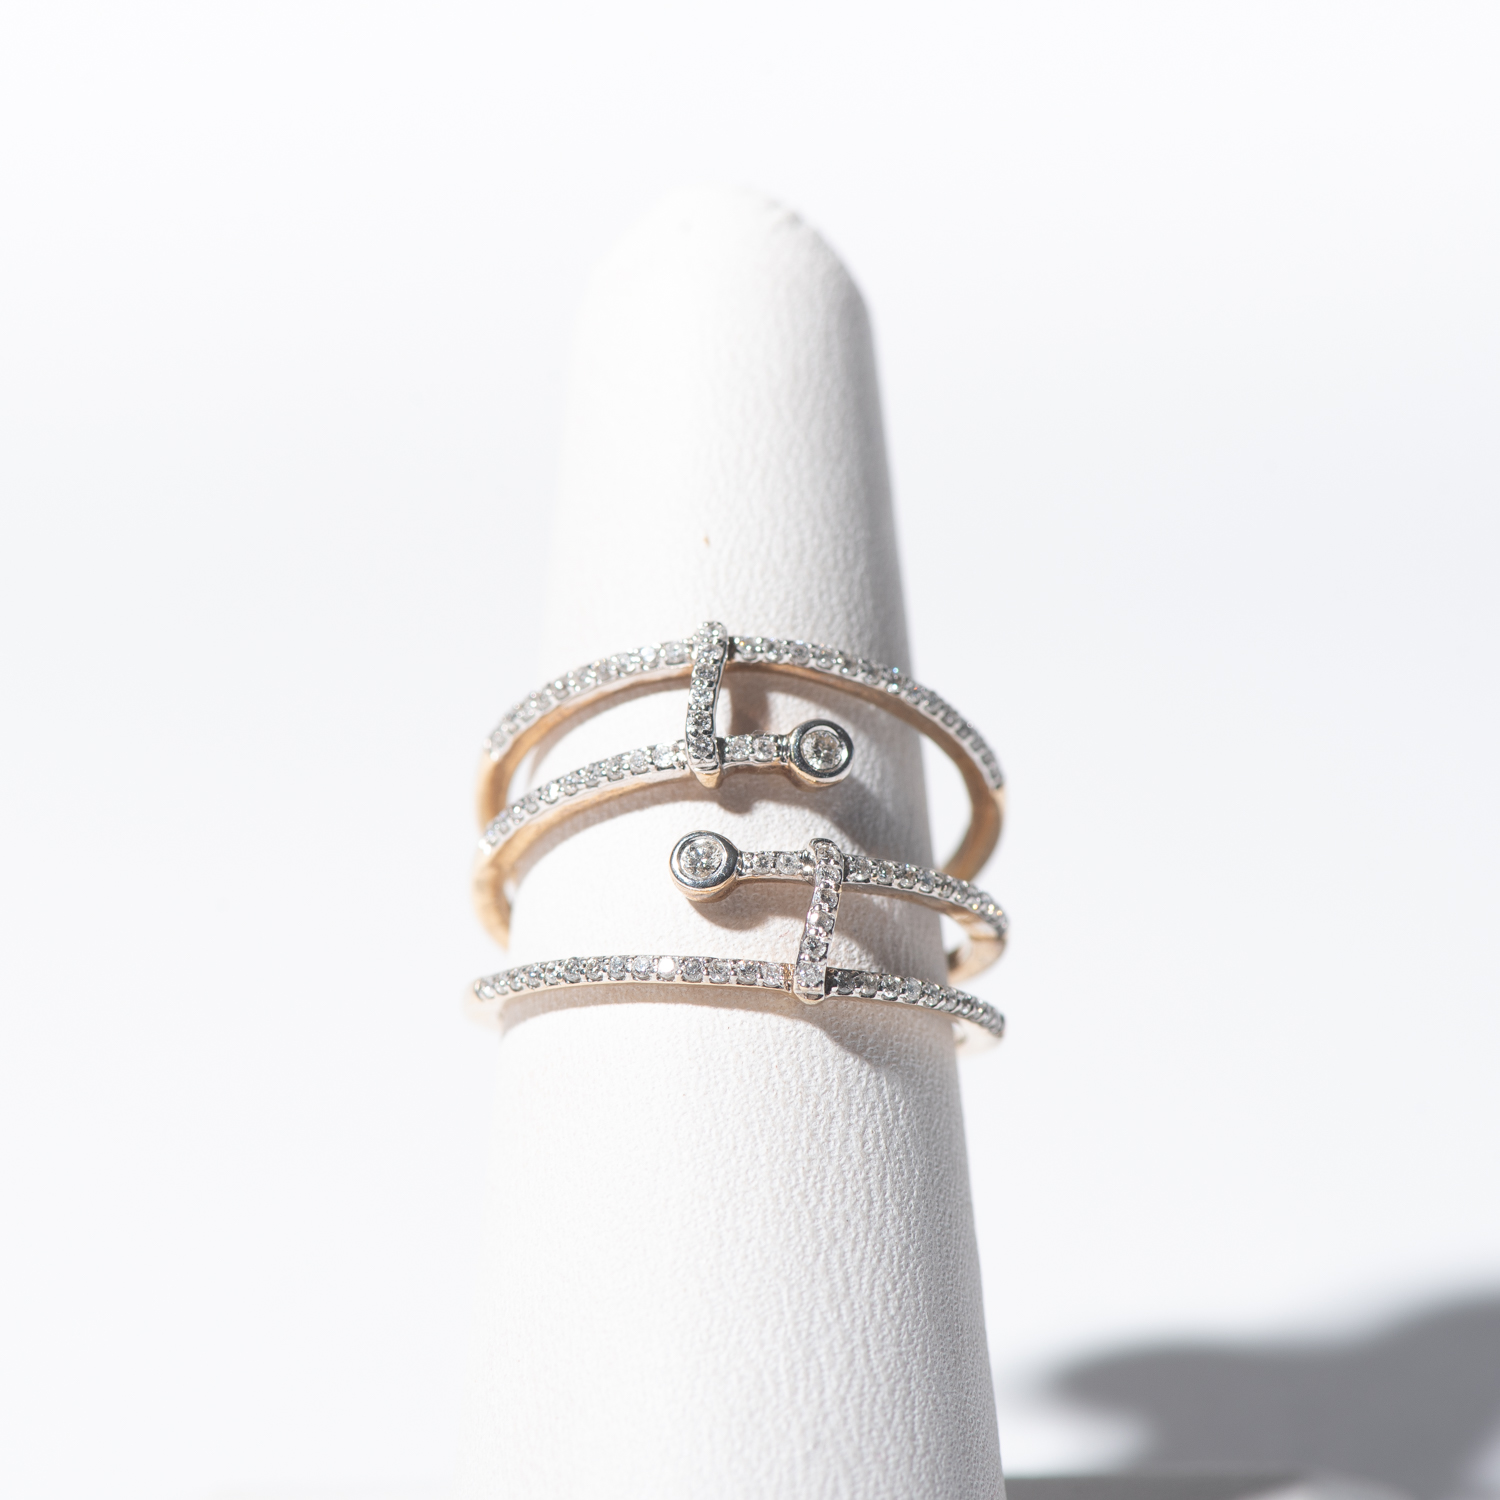 Design Eleven. - Open Style Micro Pave Diamond Ring in Mixed Metals